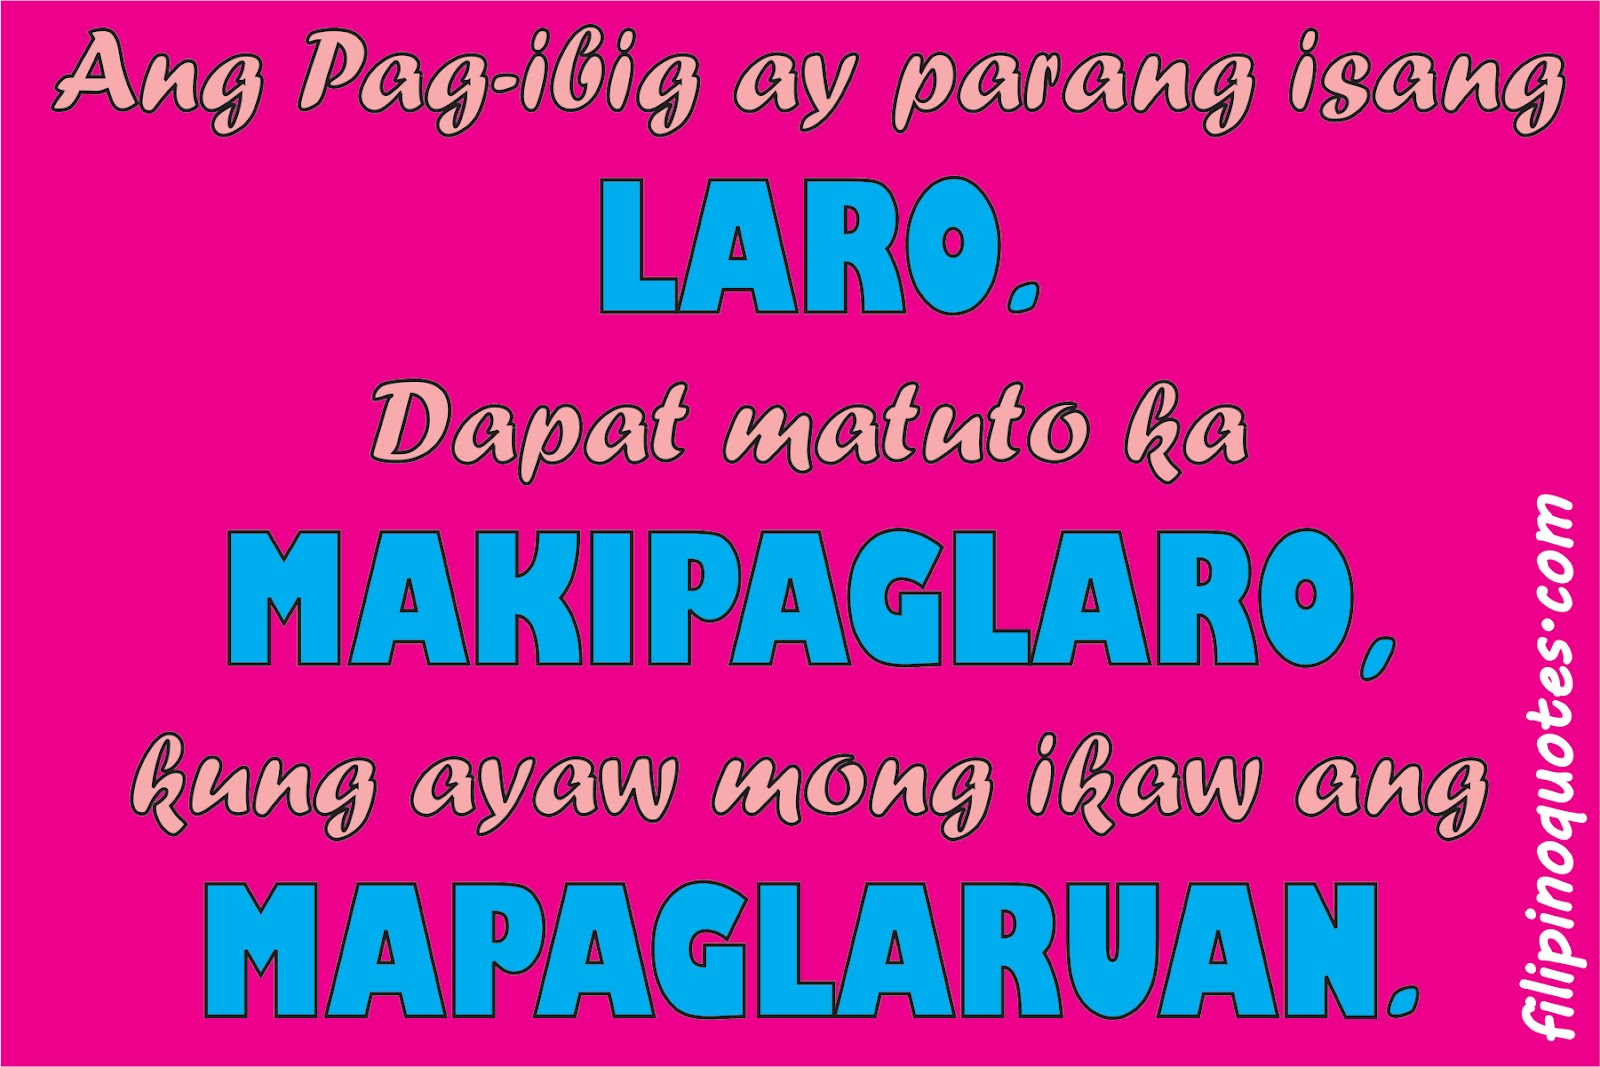 Tagalog Inspirational Quotes From Proverbs Quotesgram